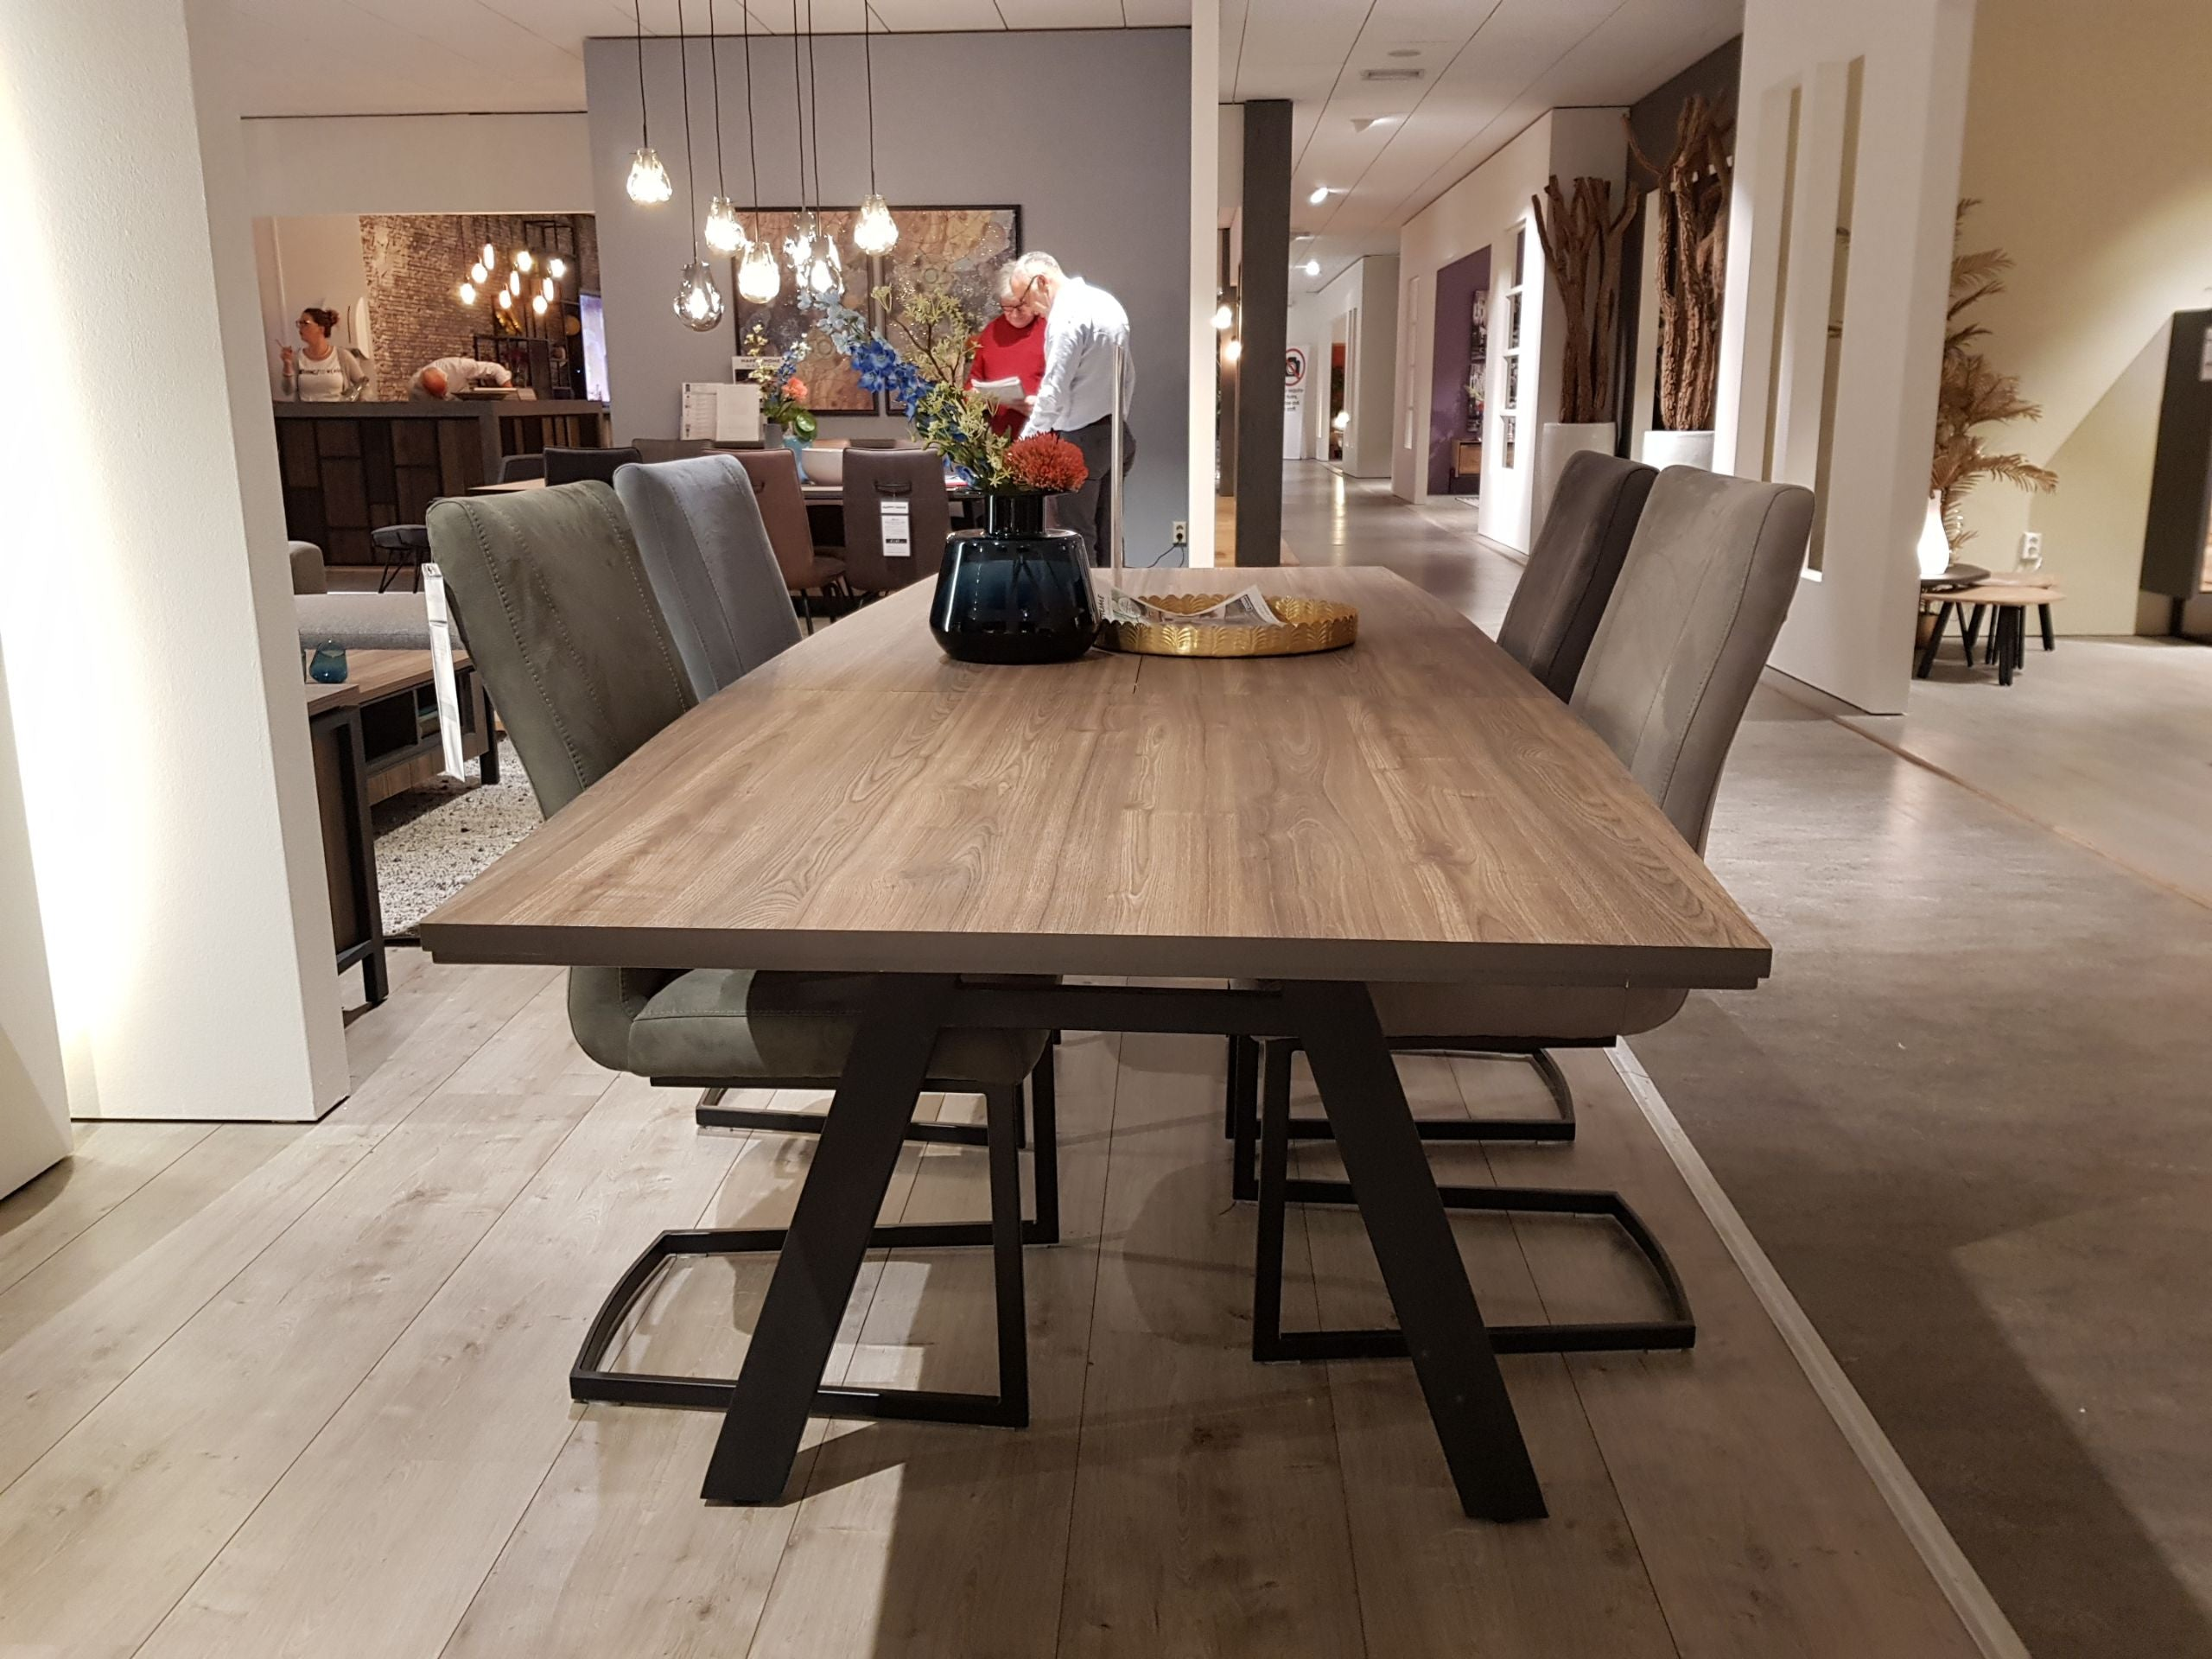 Habufa Madeira Dining Tables in Primo Laminato